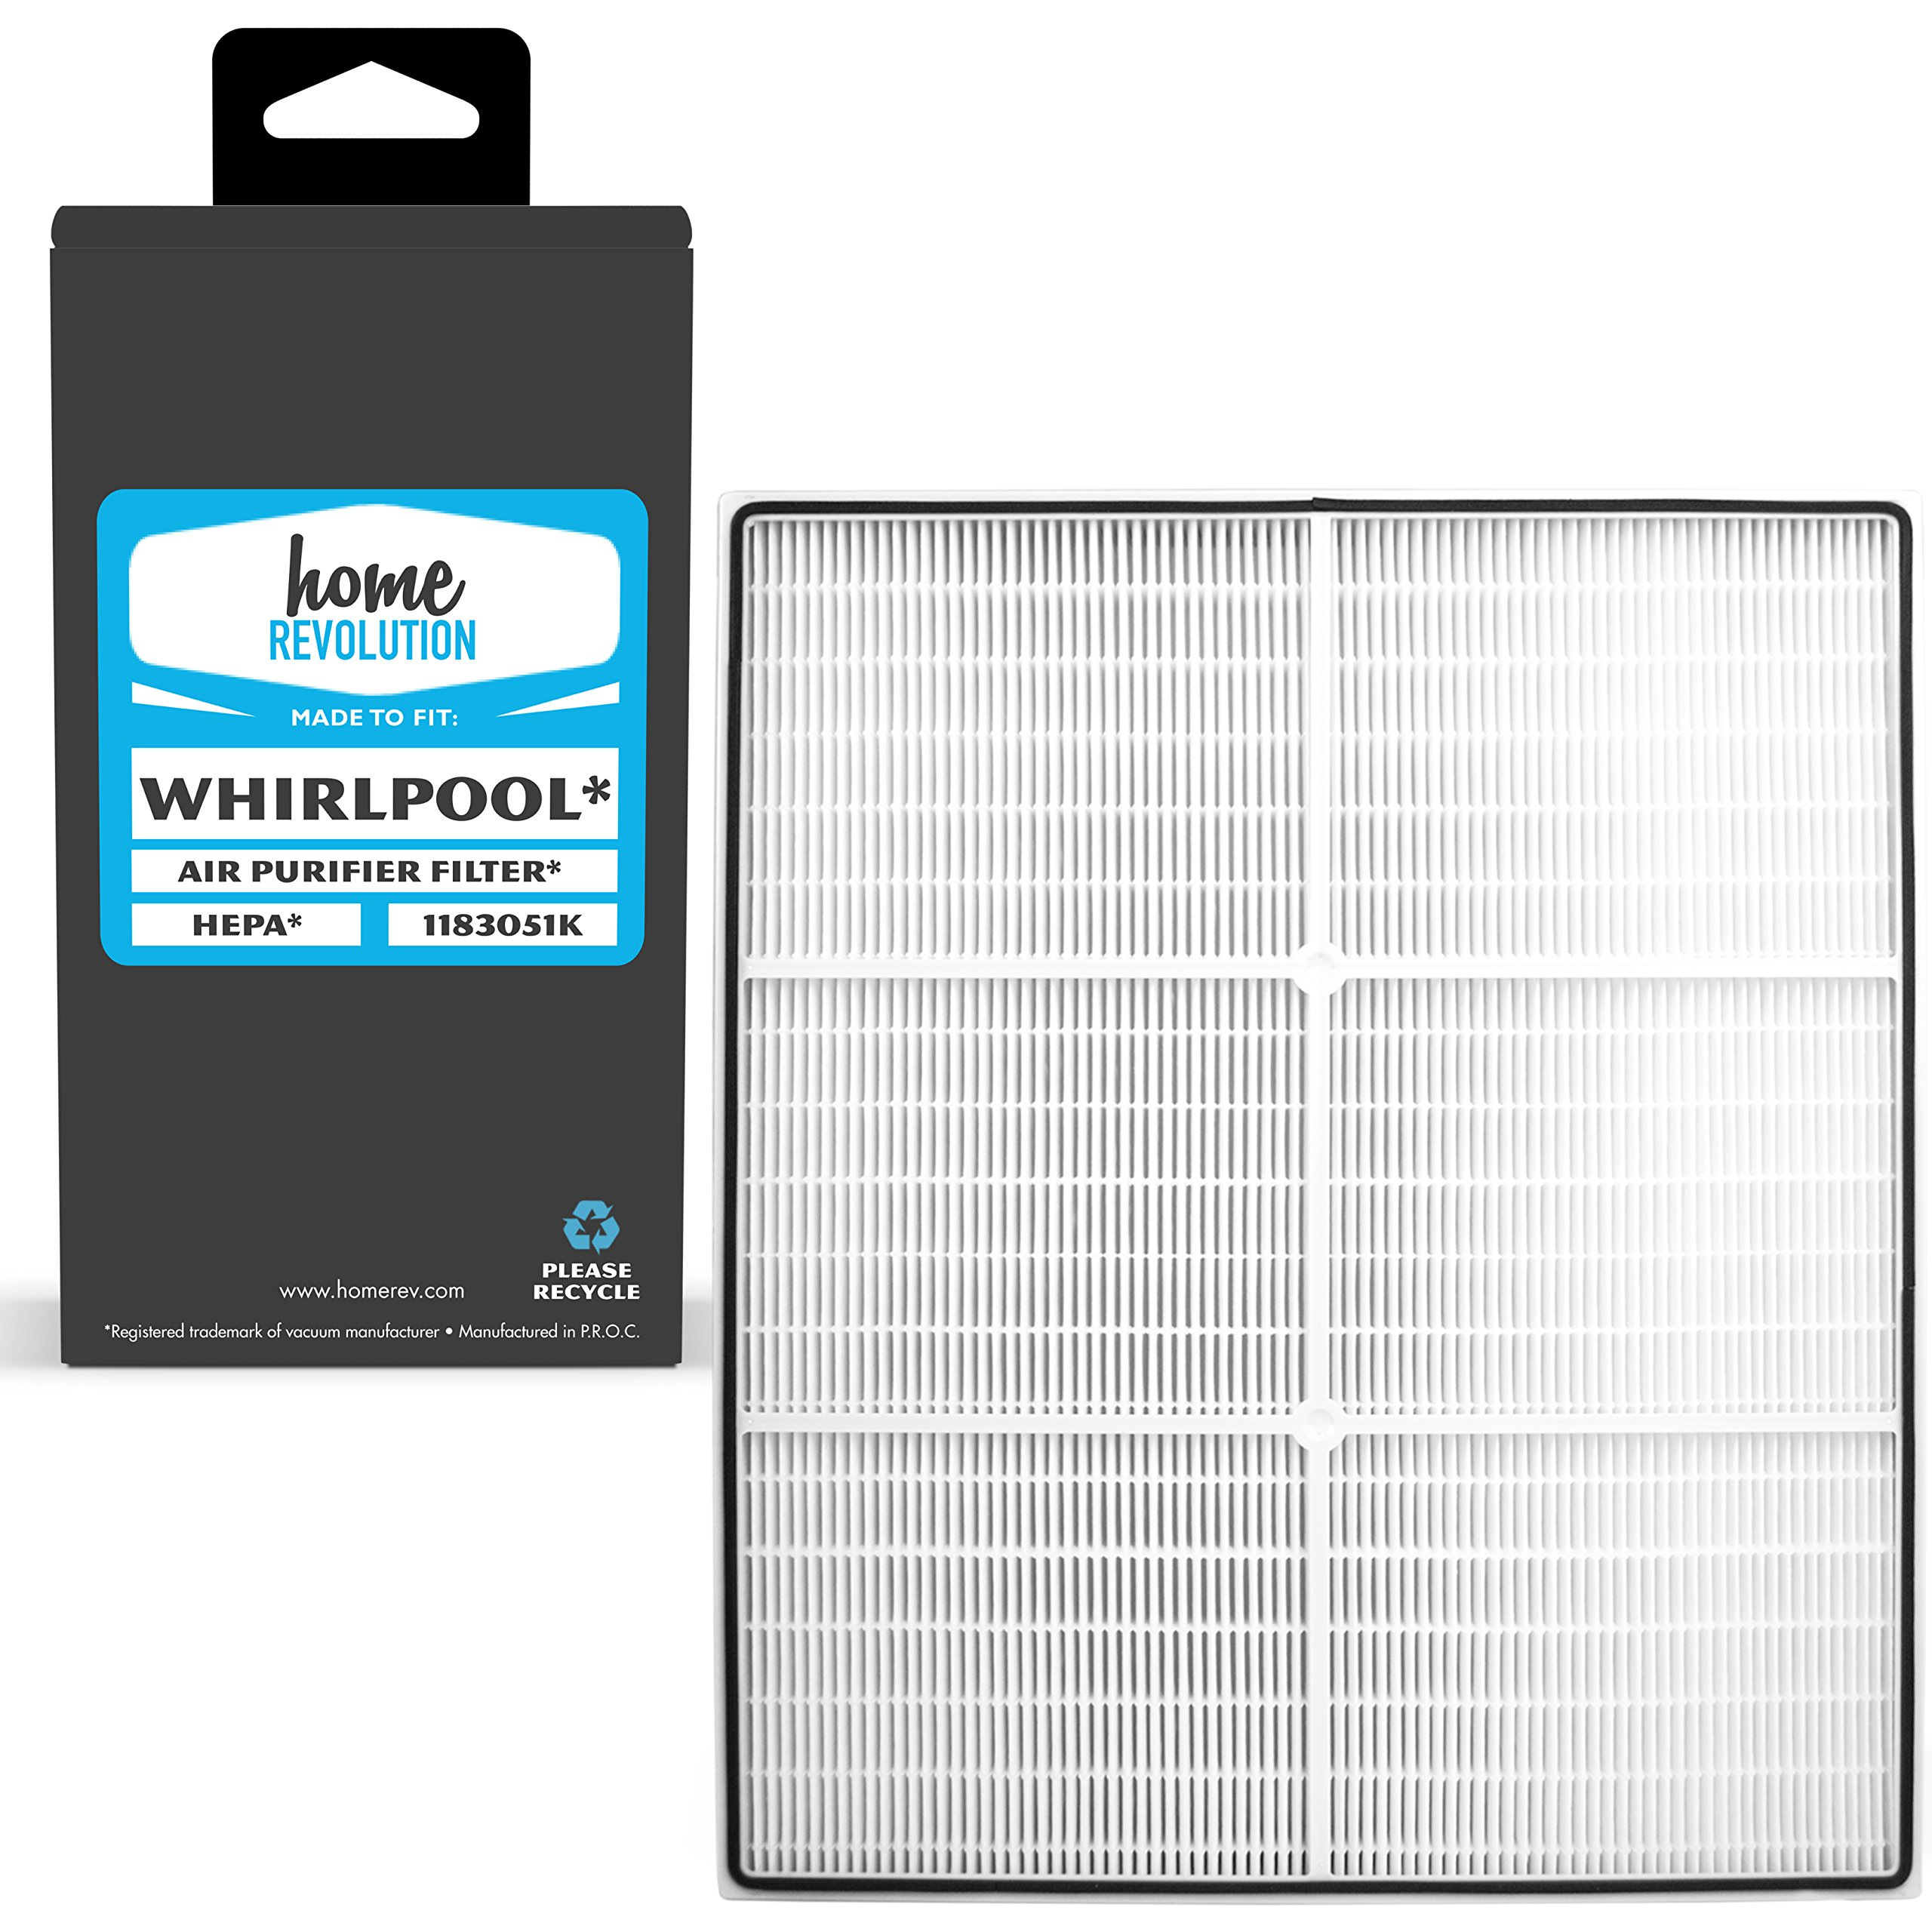 Home Revolution Replacement HEPA Filter, Fits Whirlpool AP250 & AP150 Air Purifiers and Part 1183051K